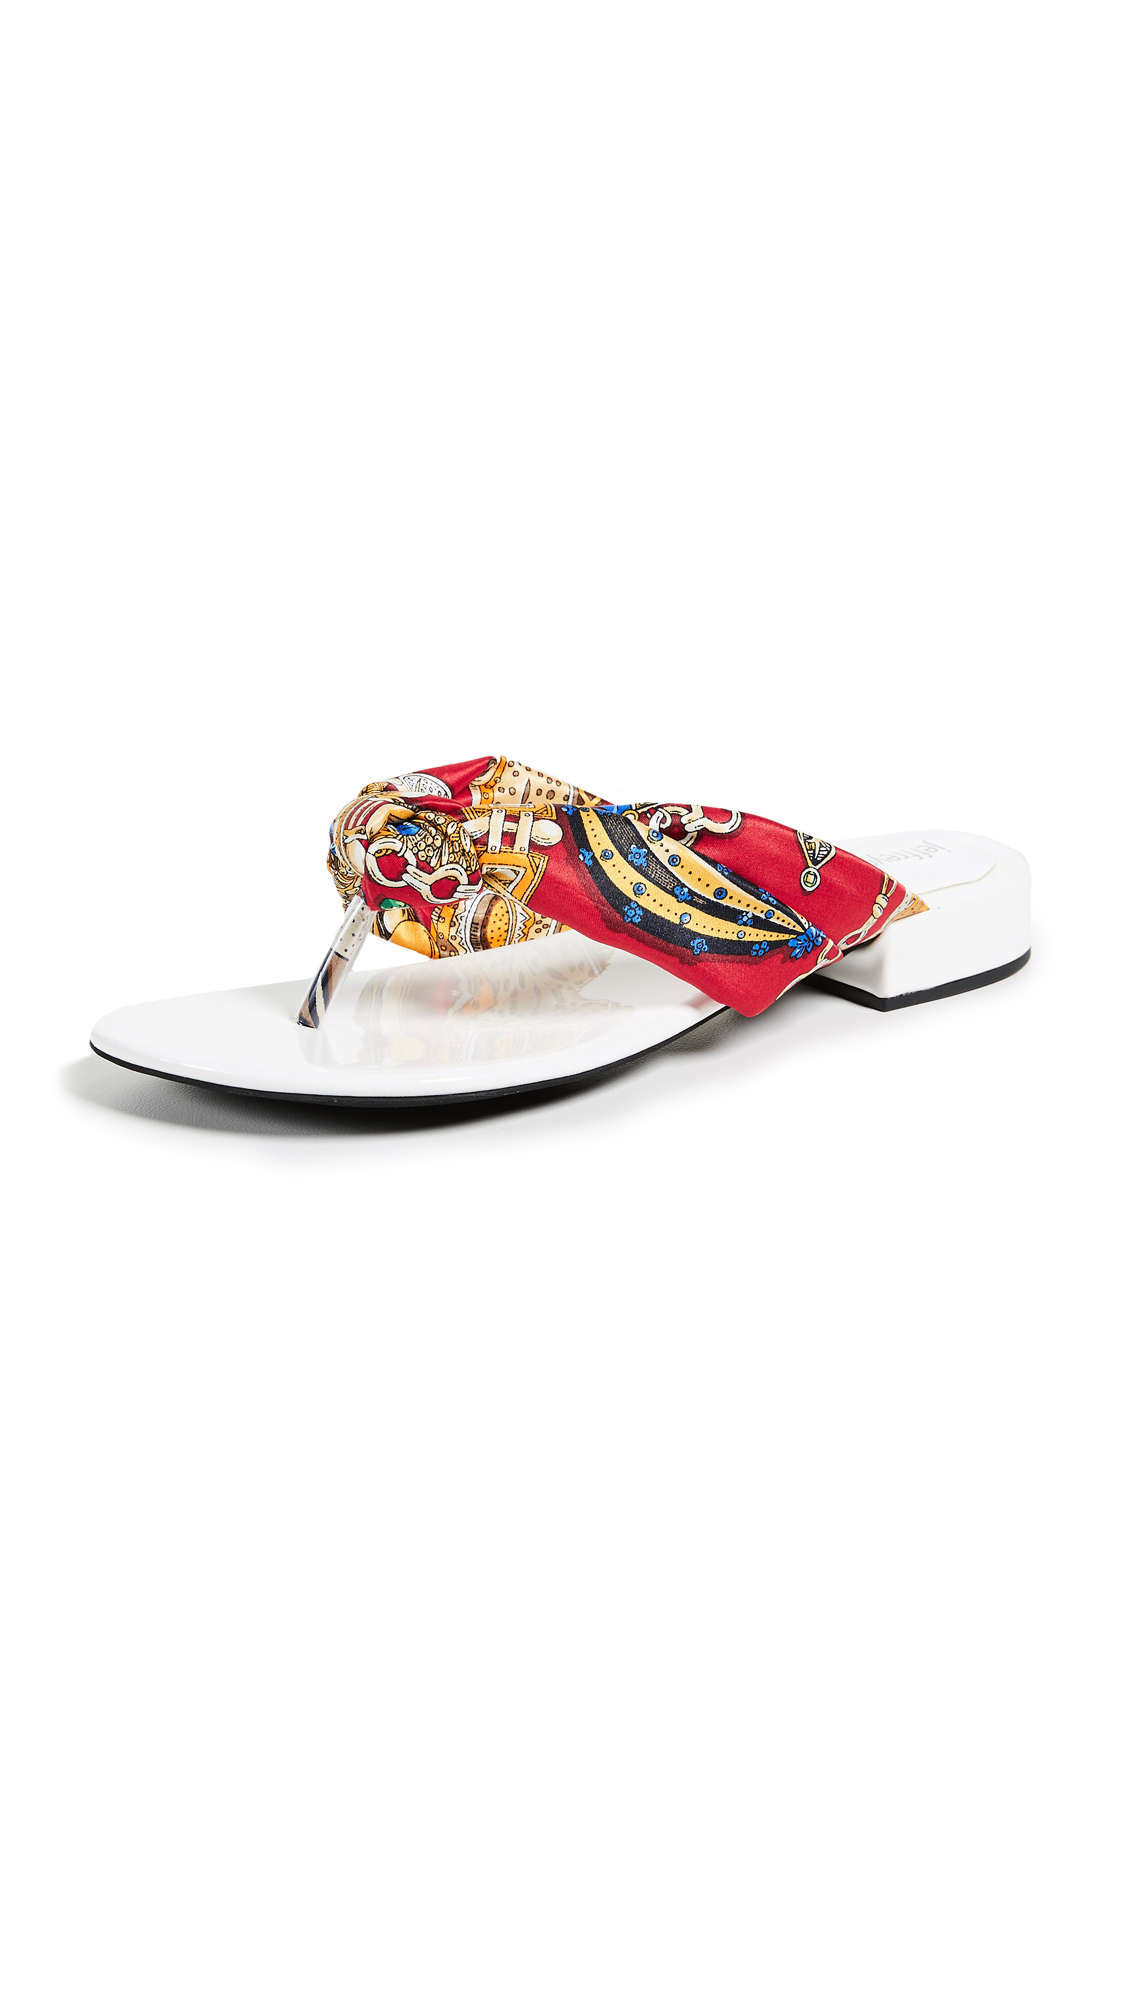 Jeffrey Campbell Tampa Chic Flop Flops - White/Red